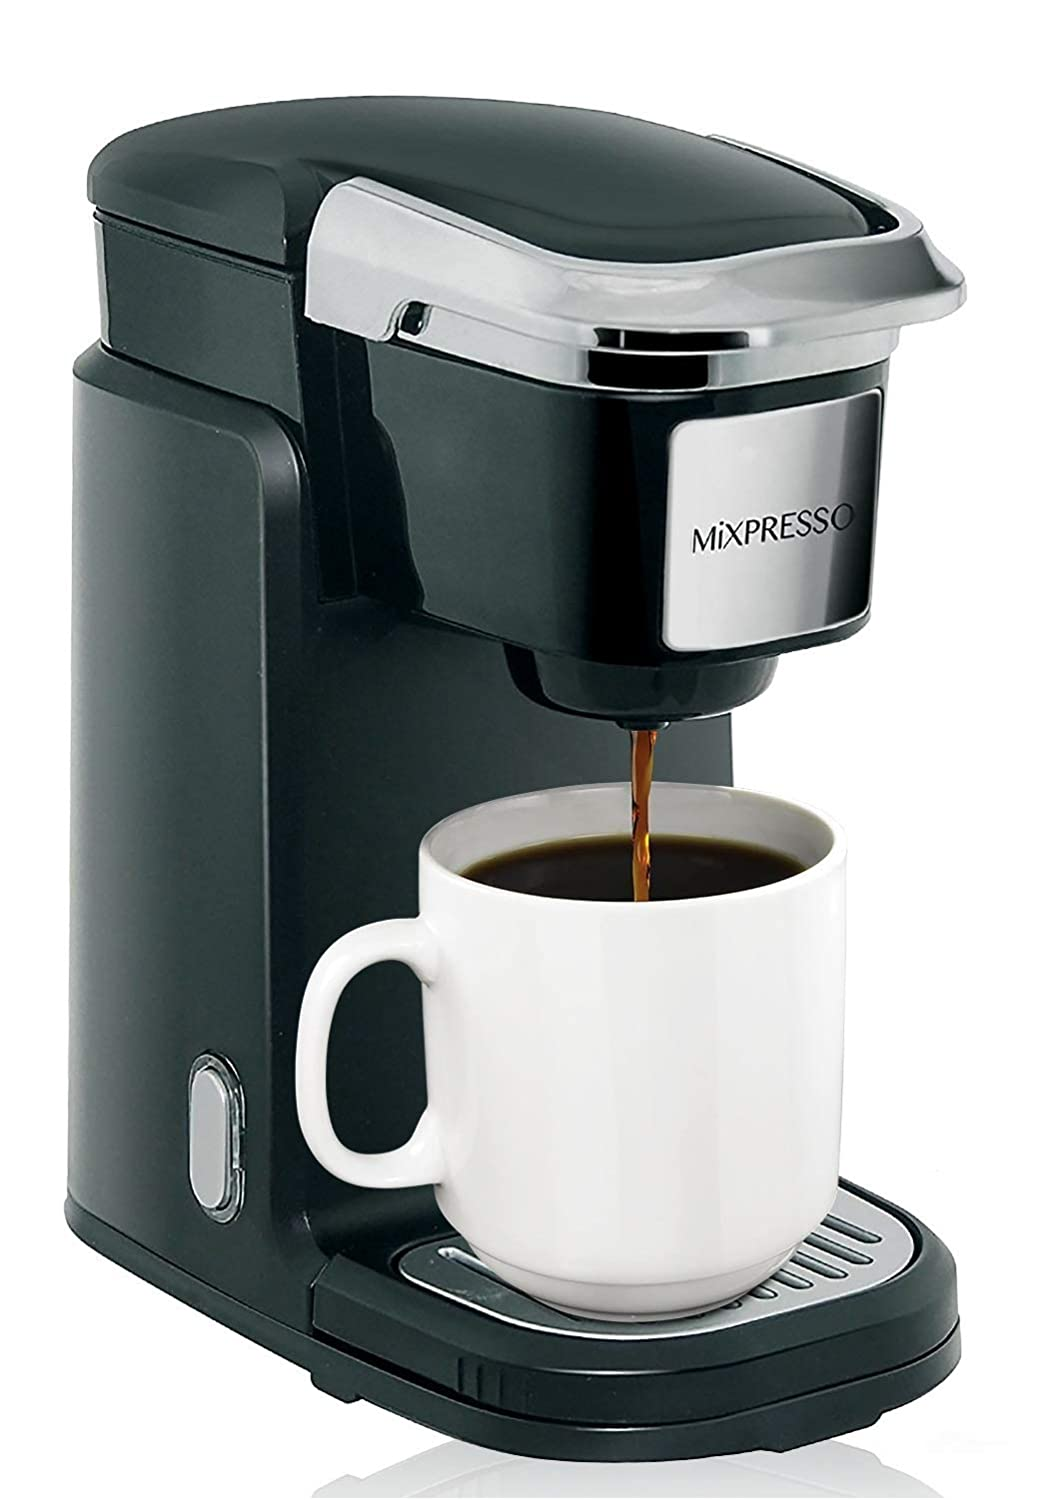 Mixpresso Single Cup Coffee Maker | Personal, Single Serve Coffee Brewer Machine, Compatible With K-Cups | Quick Brew Technology, Programmable Features, One Touch Function Mixpresso Coffee